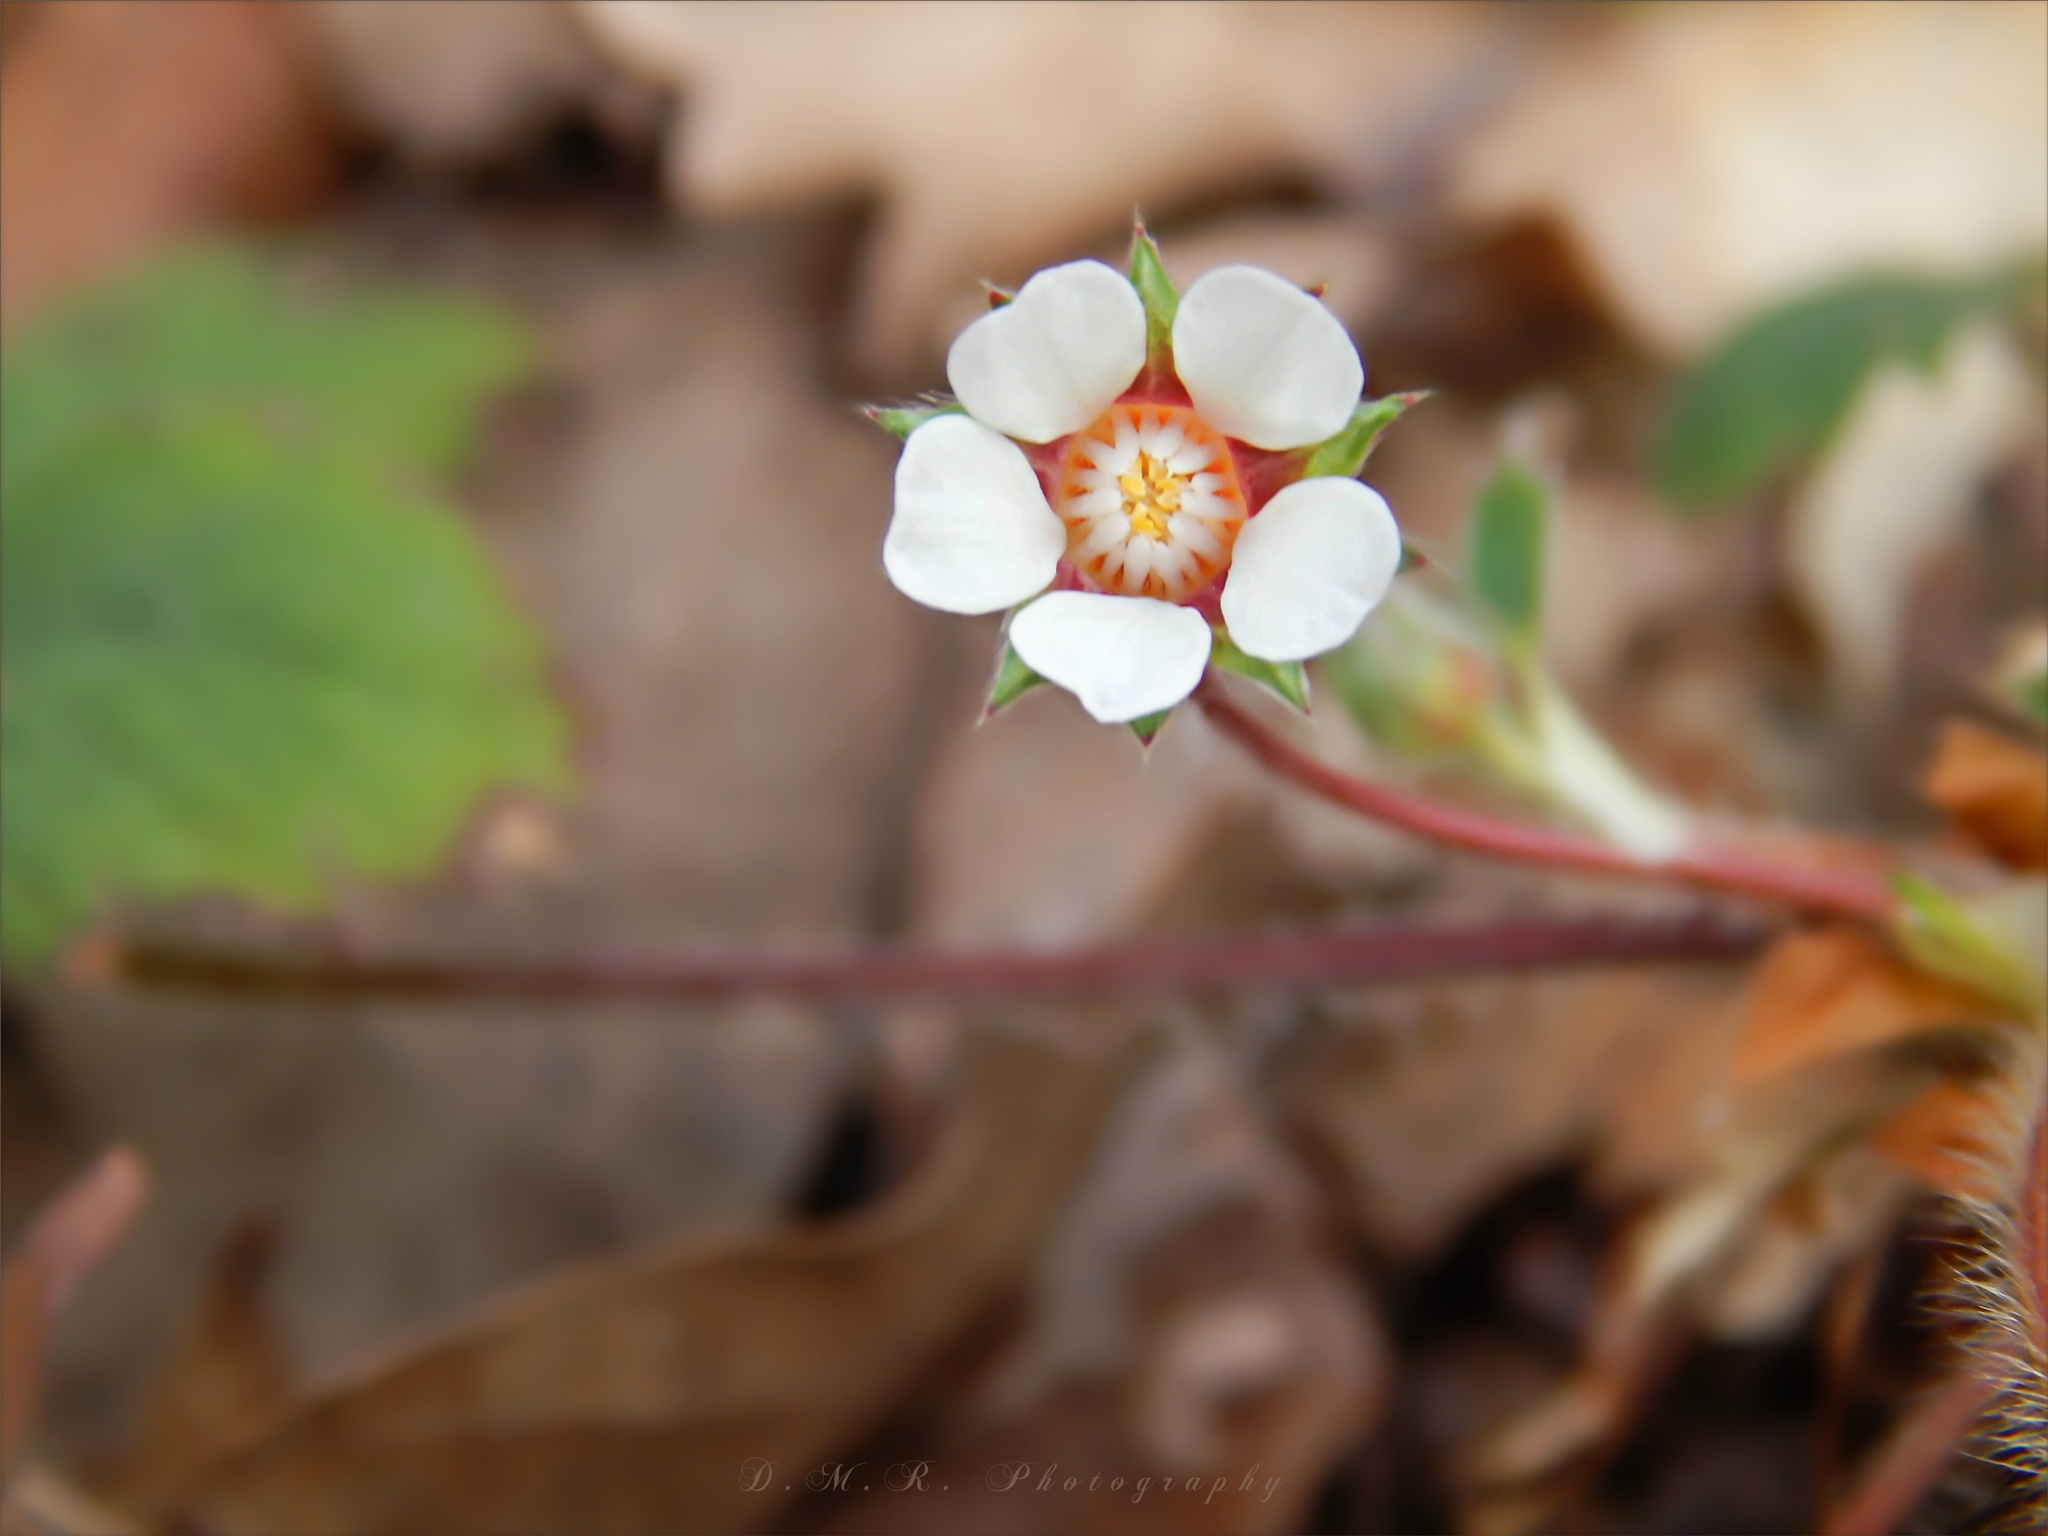 Potentilla micrantha L. ~ Barren strawberry ~ Jalova jagoda by Драгана М. Реџић